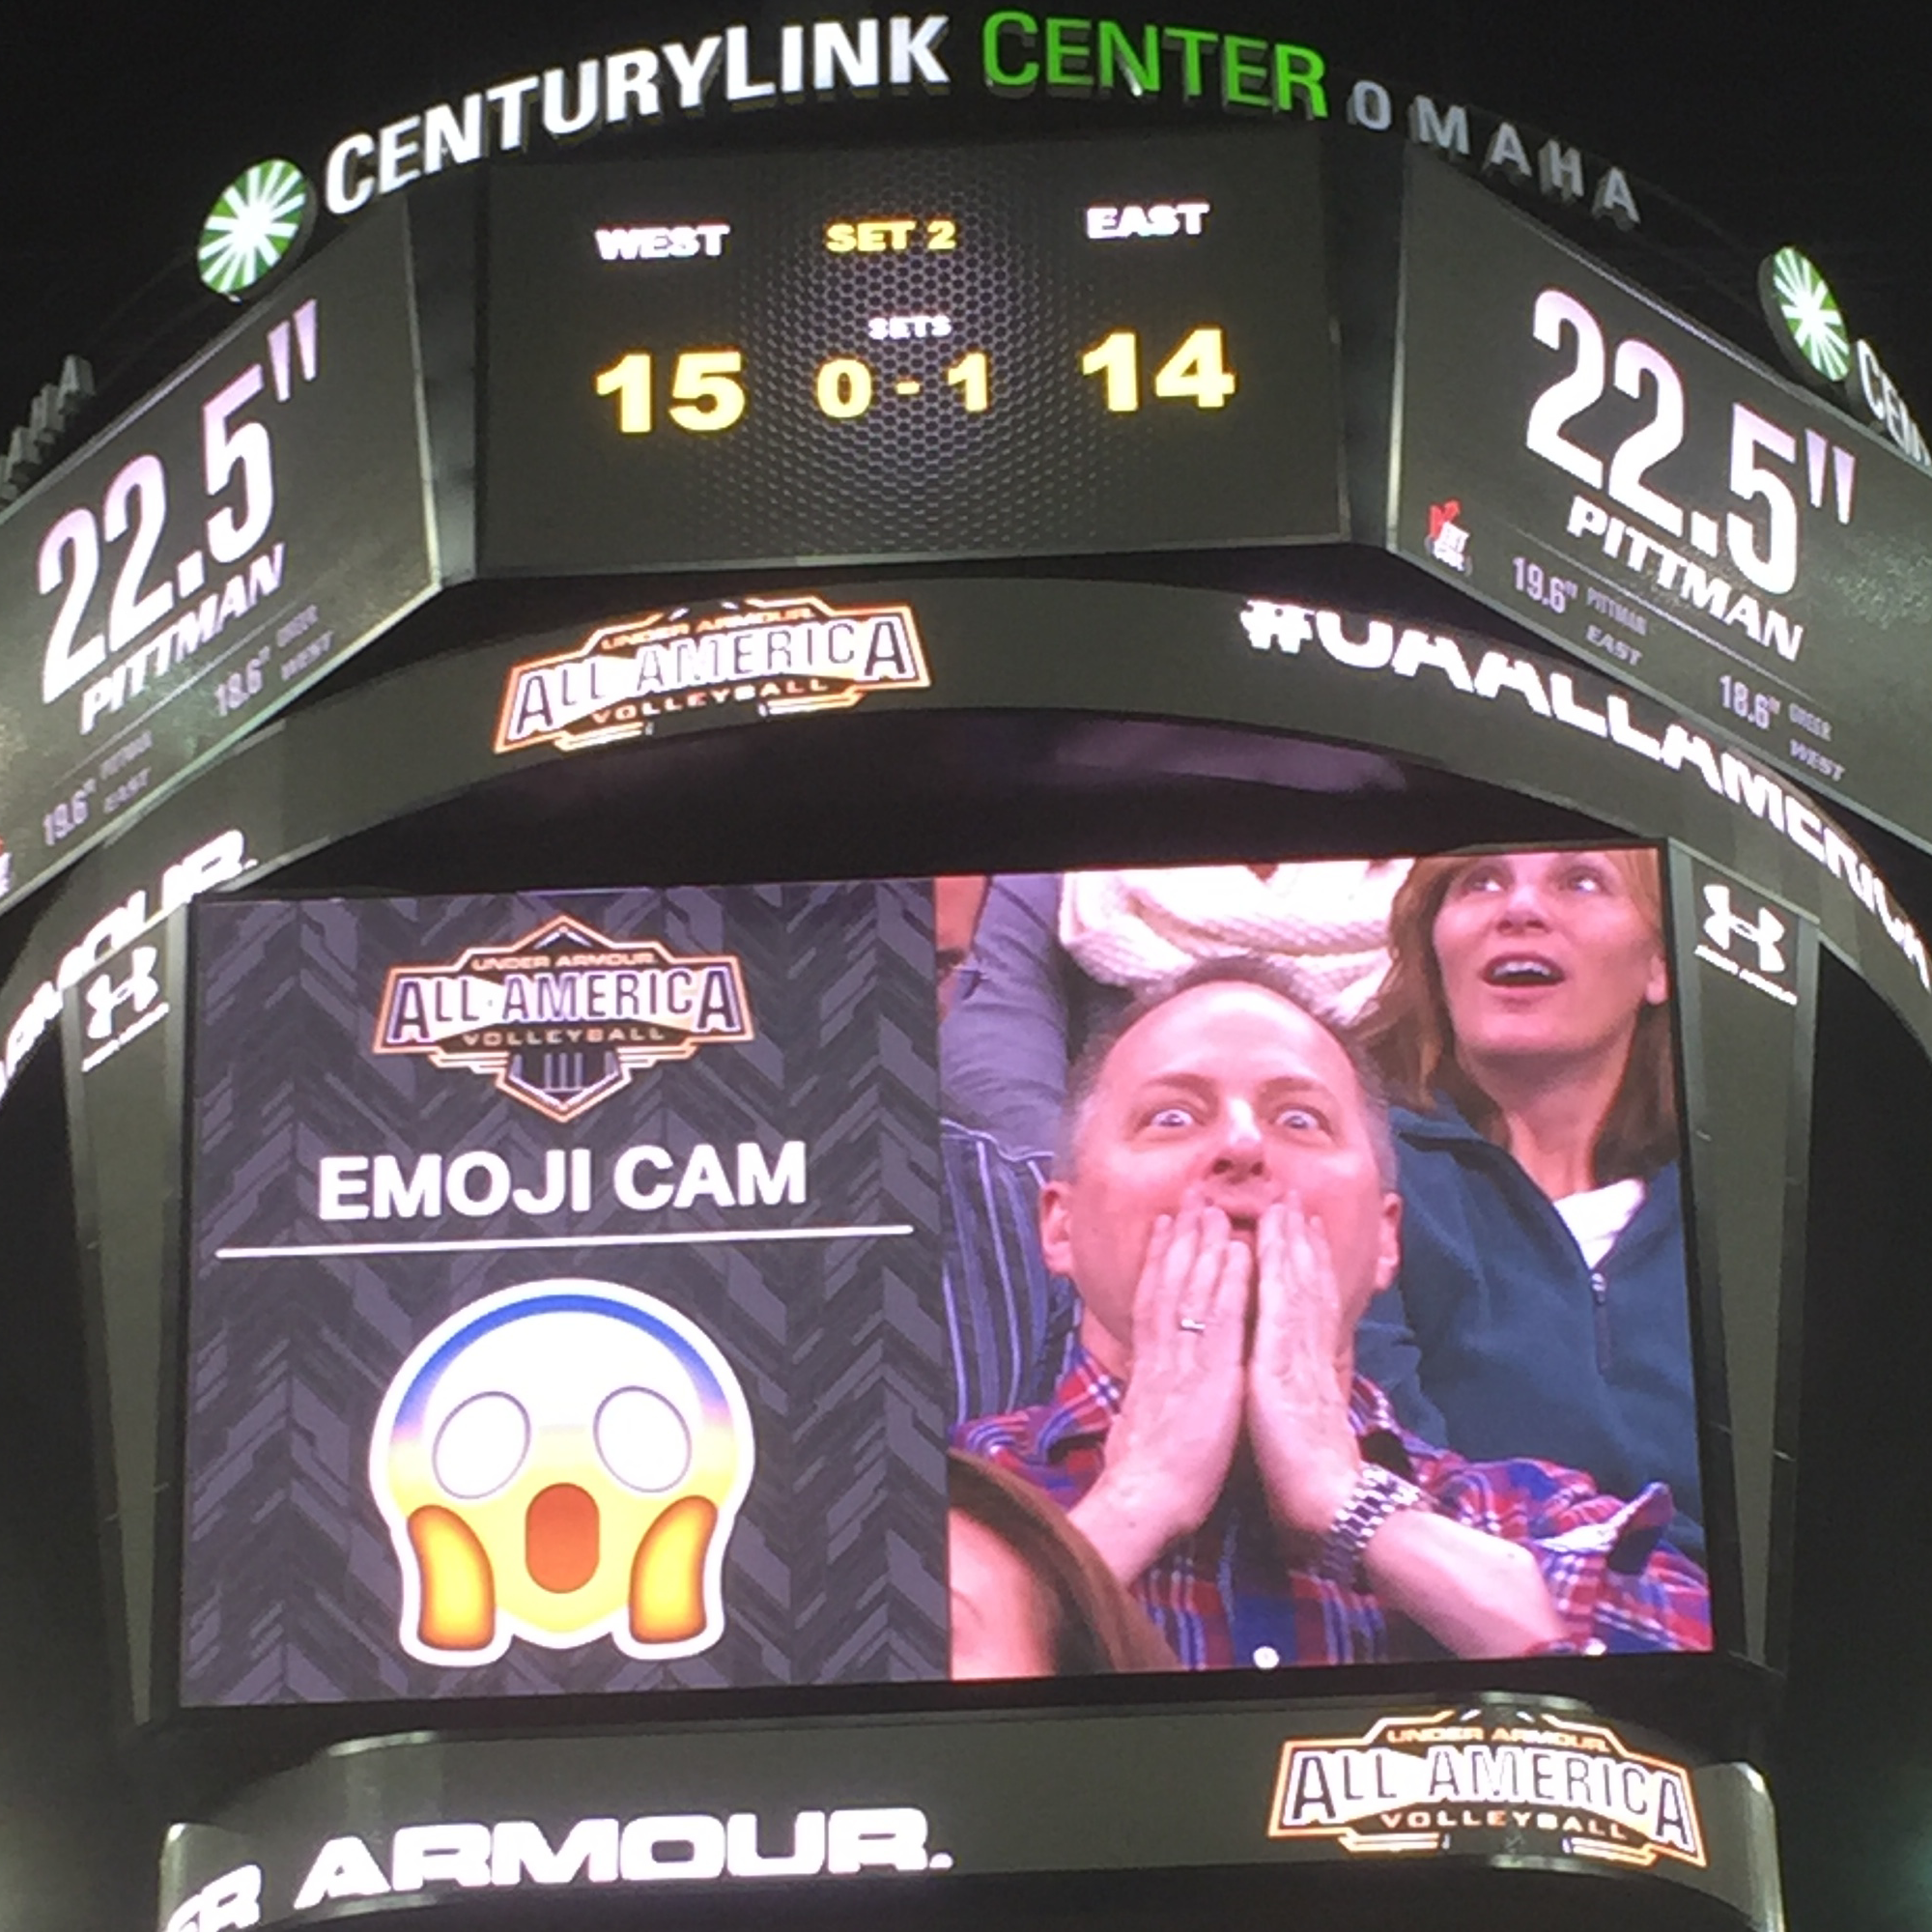 Under Armour All America Volleyball_2015_Emoji Cam_1.png